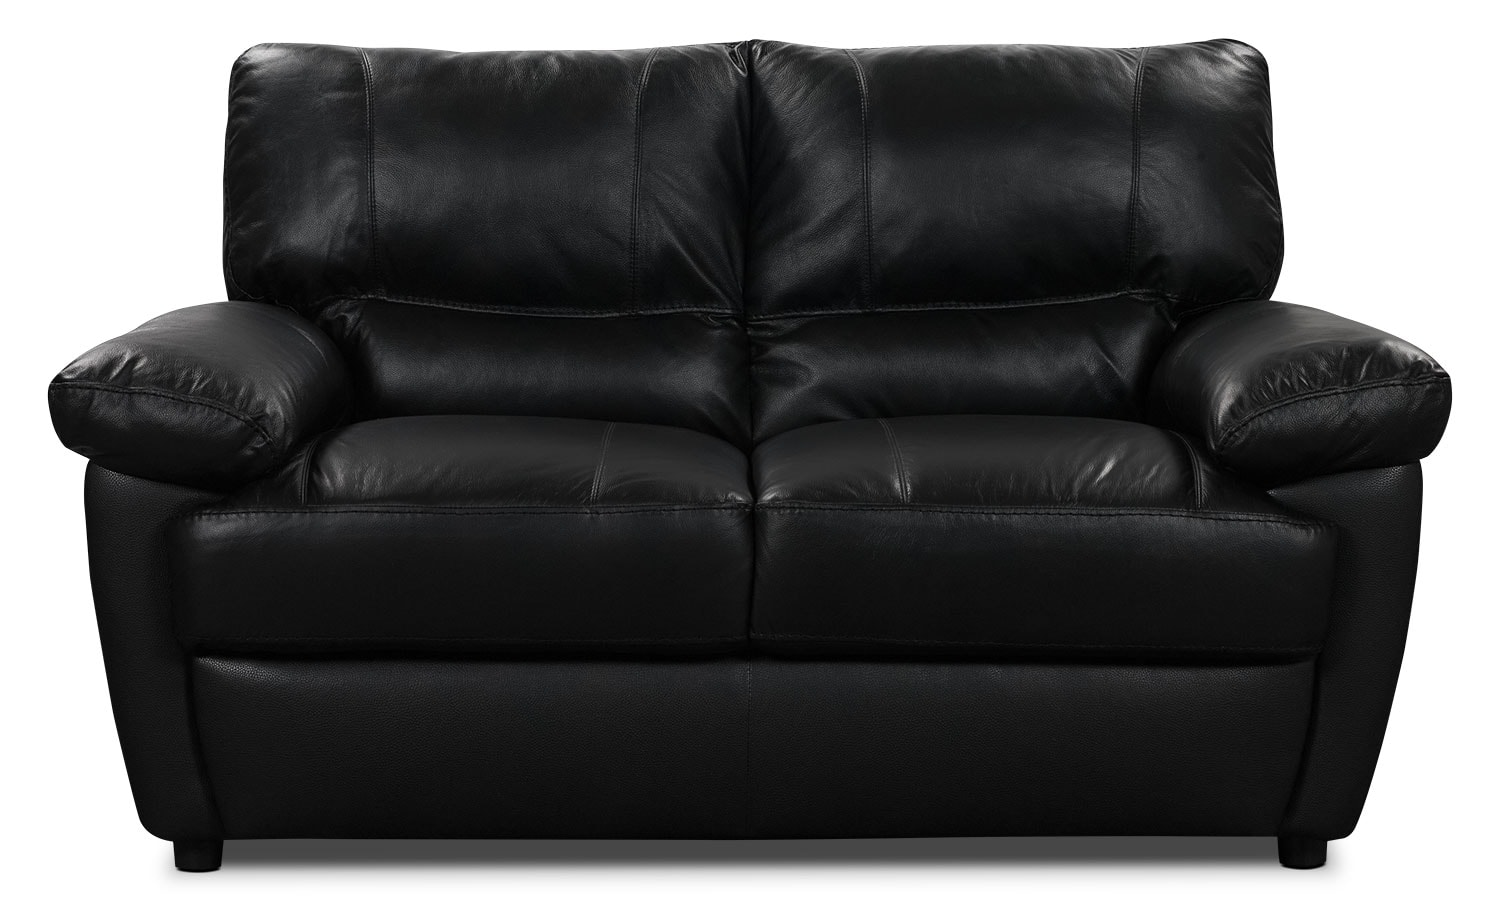 leather loveseat u2013 black hover to zoom - Black Leather Loveseat